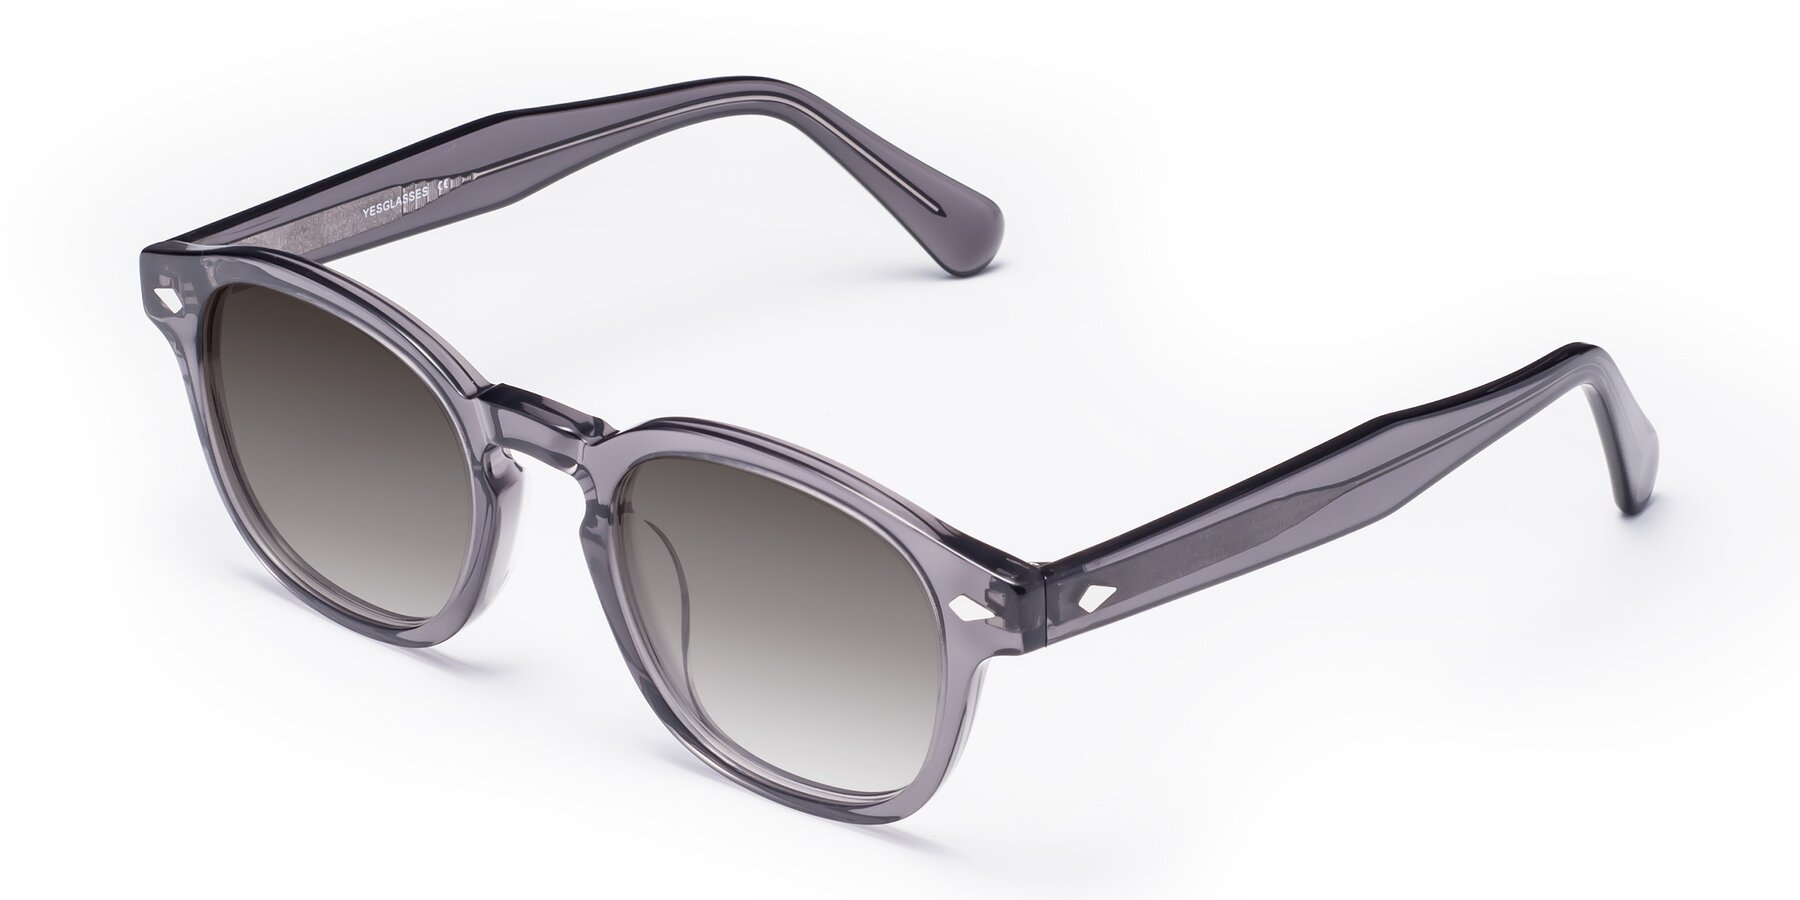 Angle of WALL-E in Translucent Gray with Gray Gradient Lenses